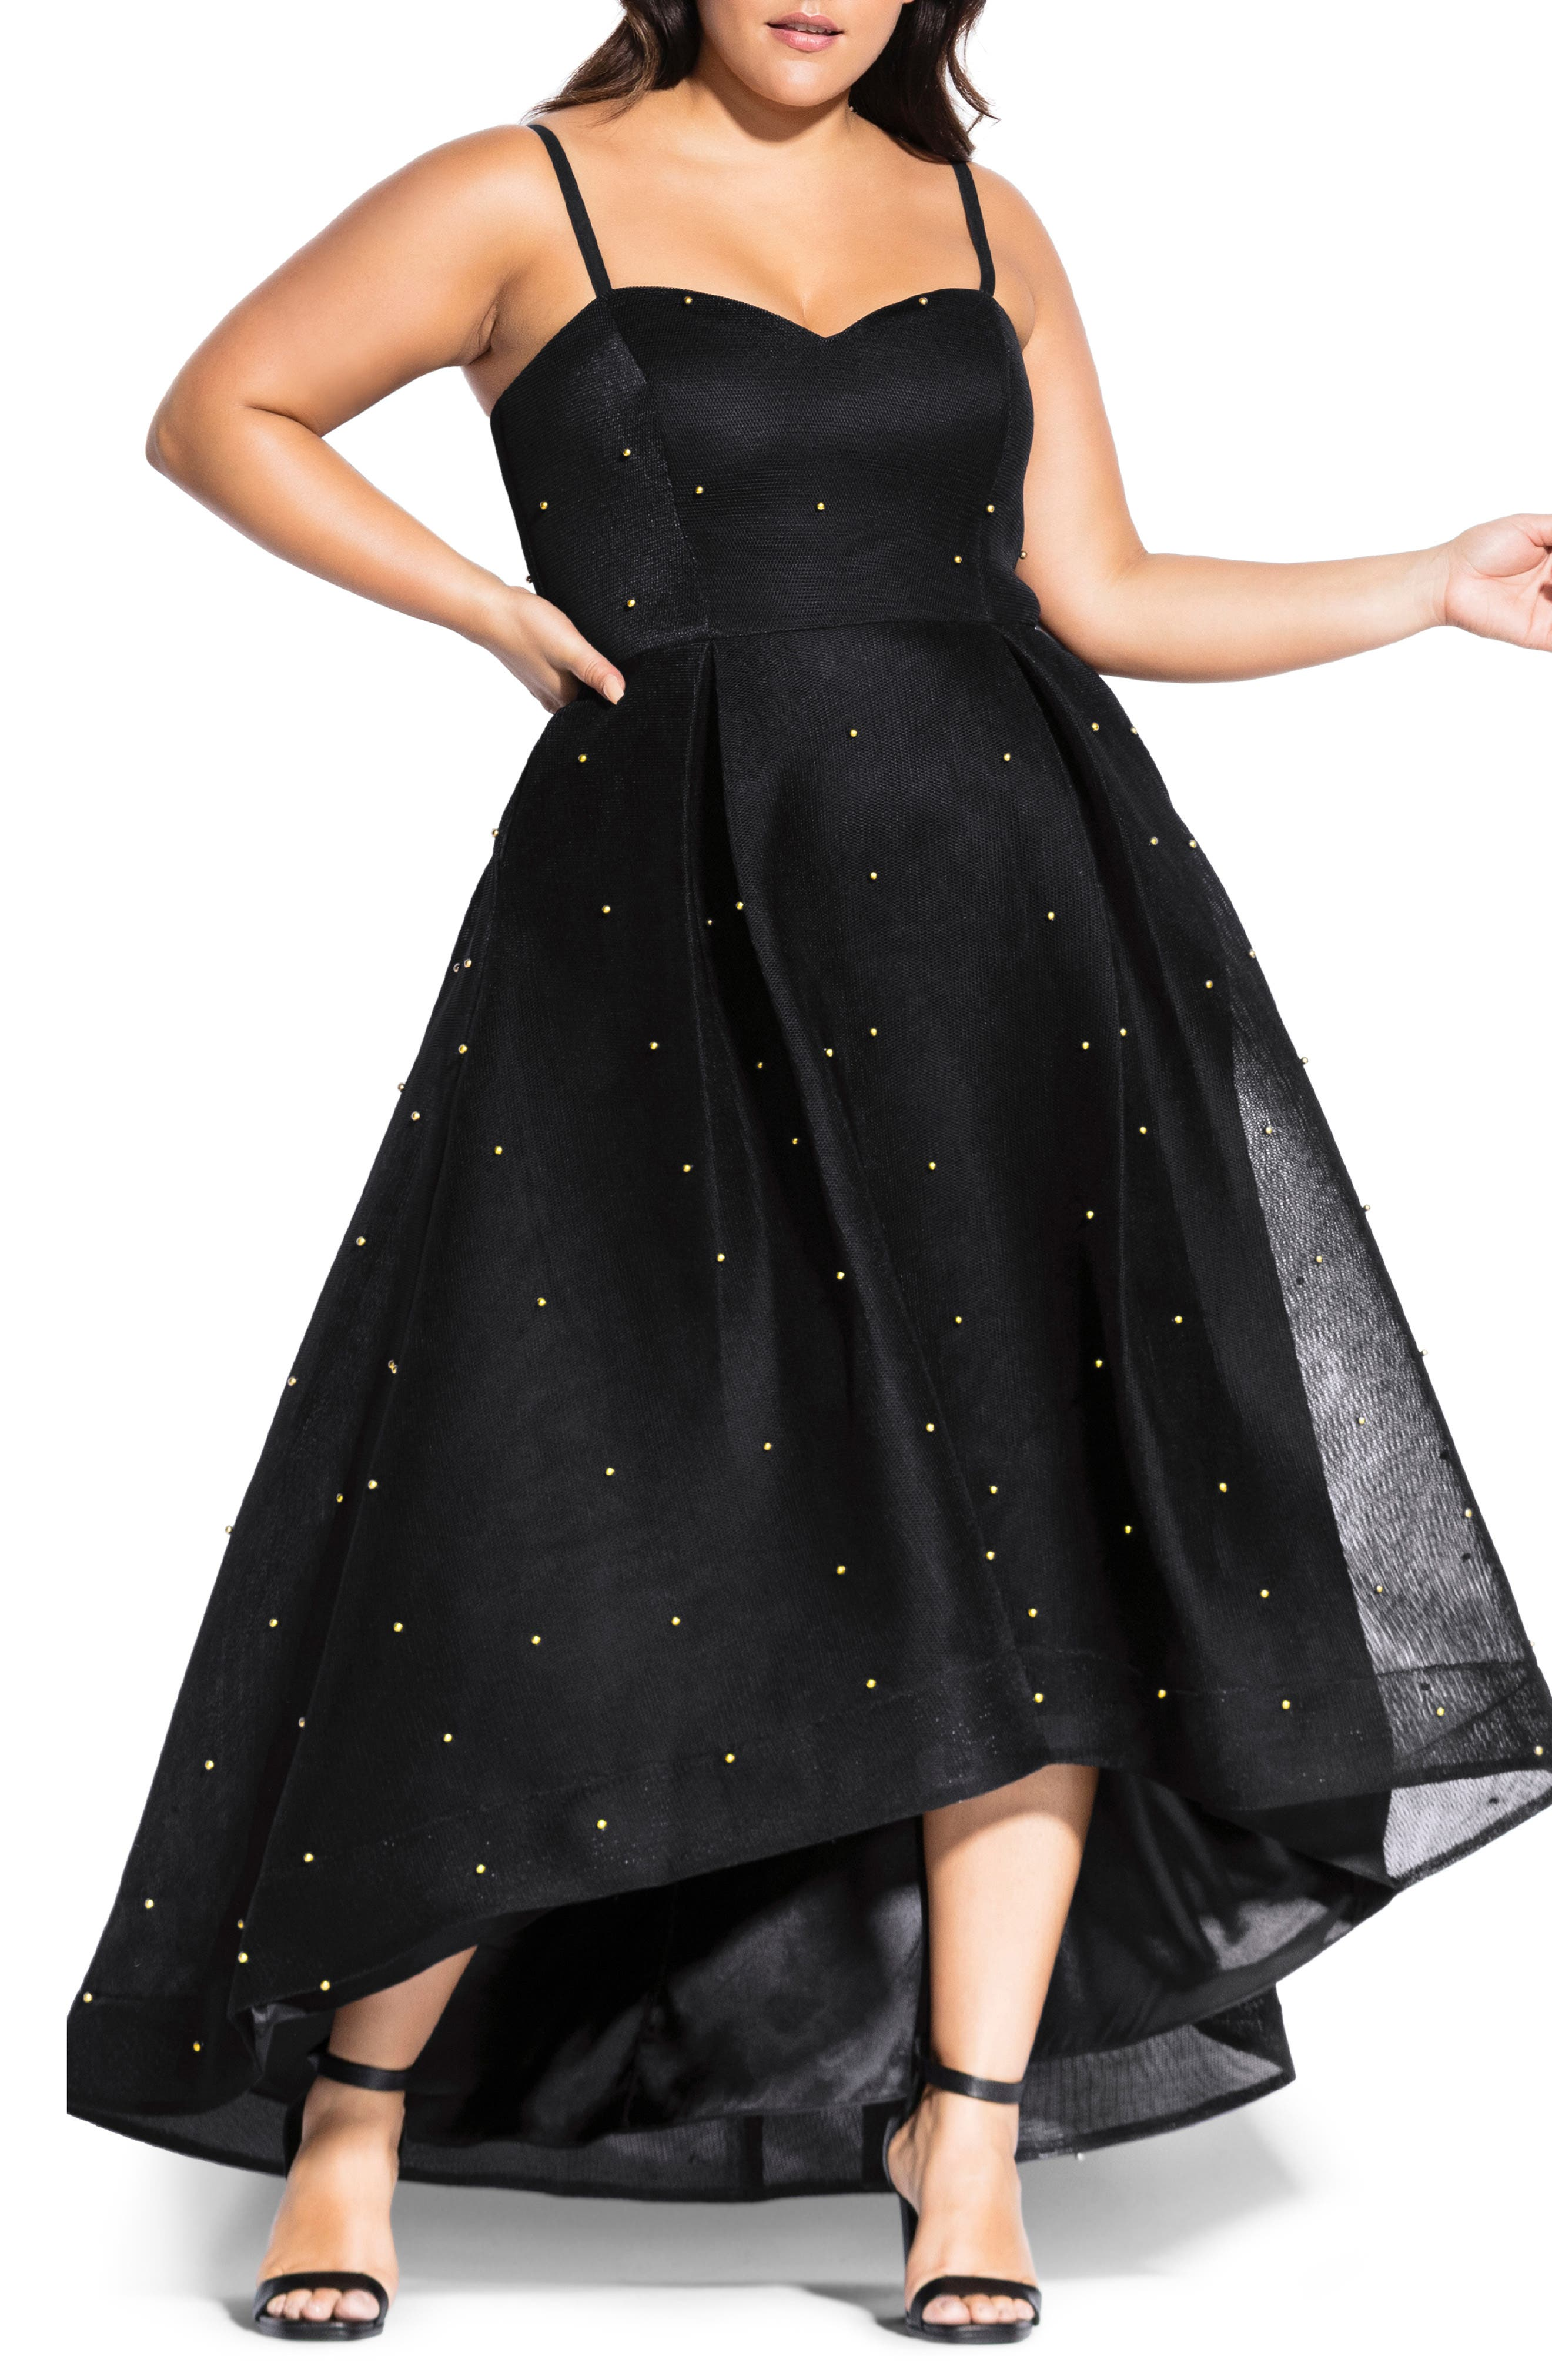 1950s Clothing Plus Size Womens City Chic Sweet Jewel Evening Dress Size X-Large - Black $219.00 AT vintagedancer.com